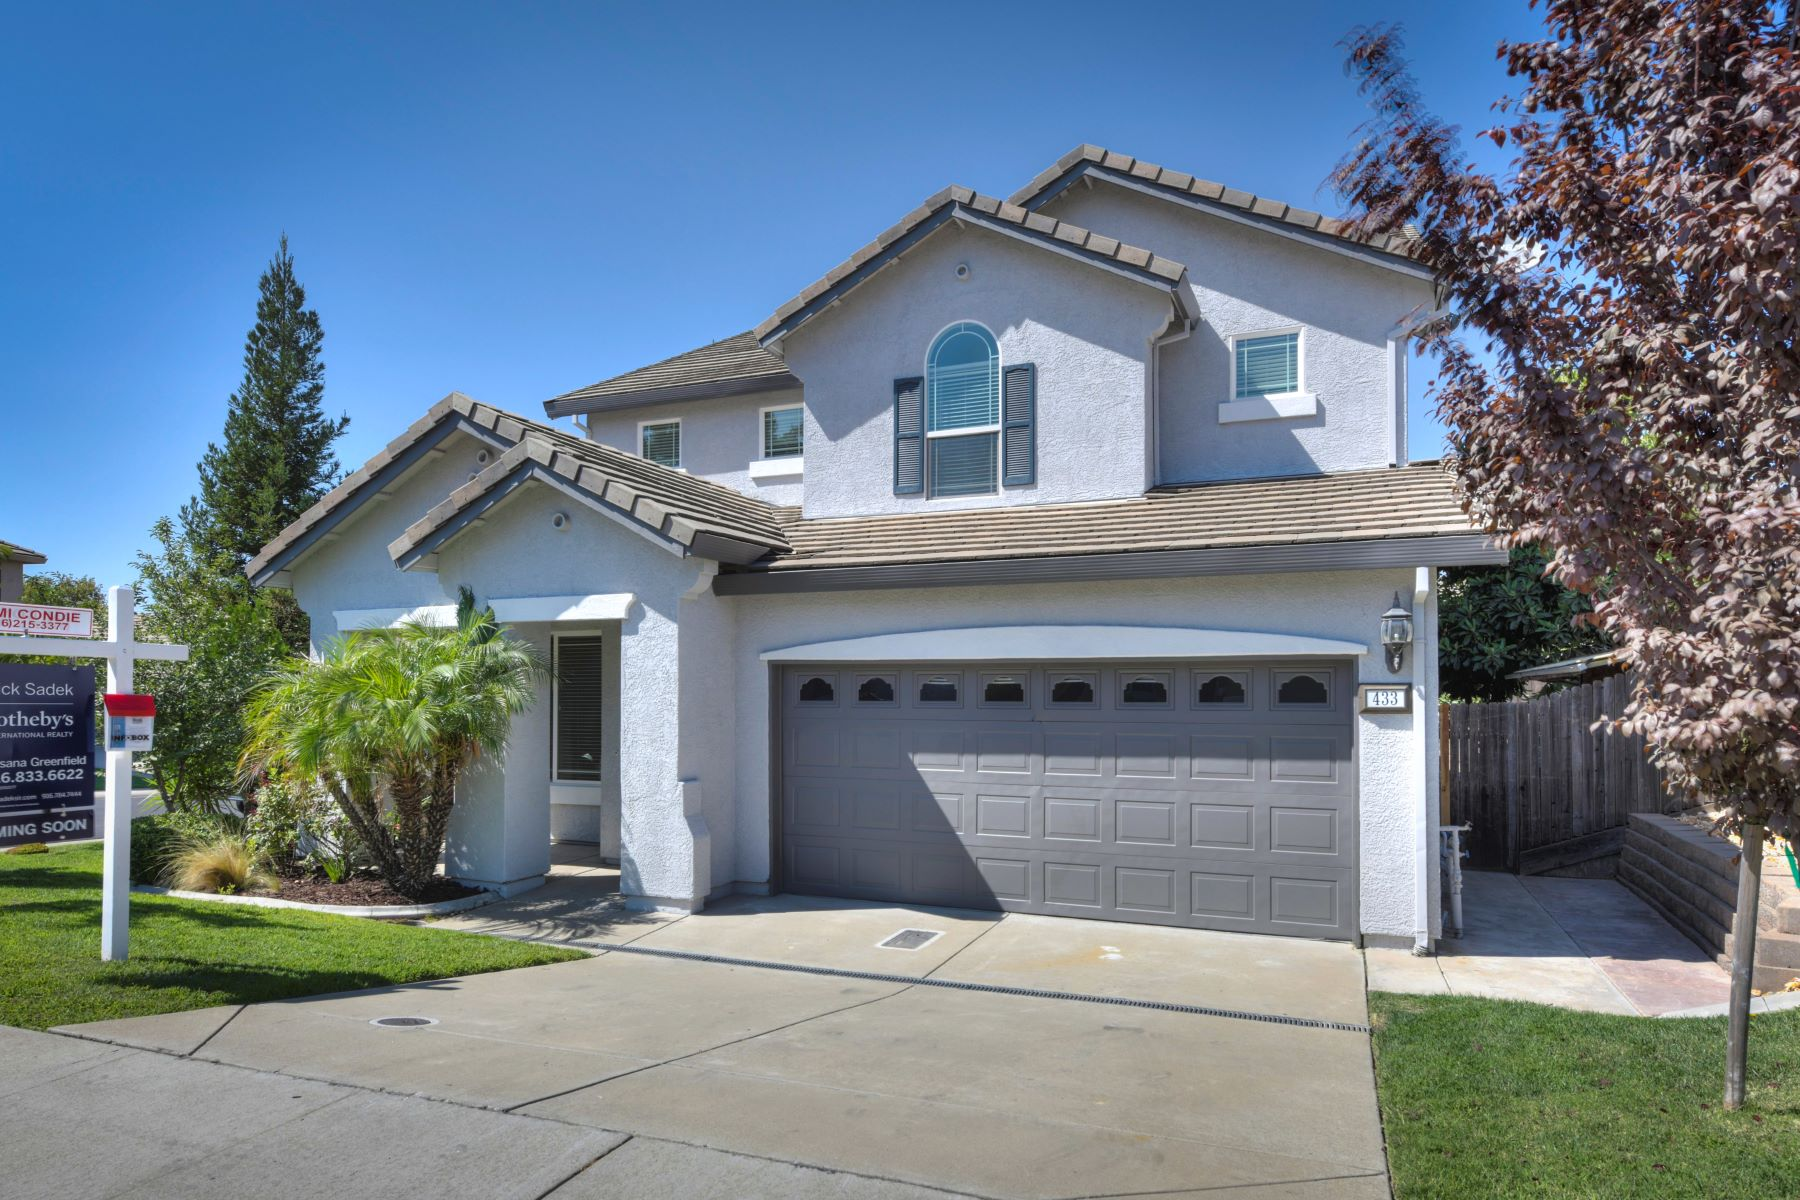 Single Family Home for Active at 433 Elmwood Ct, Roseville, CA 956787 433 Elmwood Ct Roseville, California 95678 United States